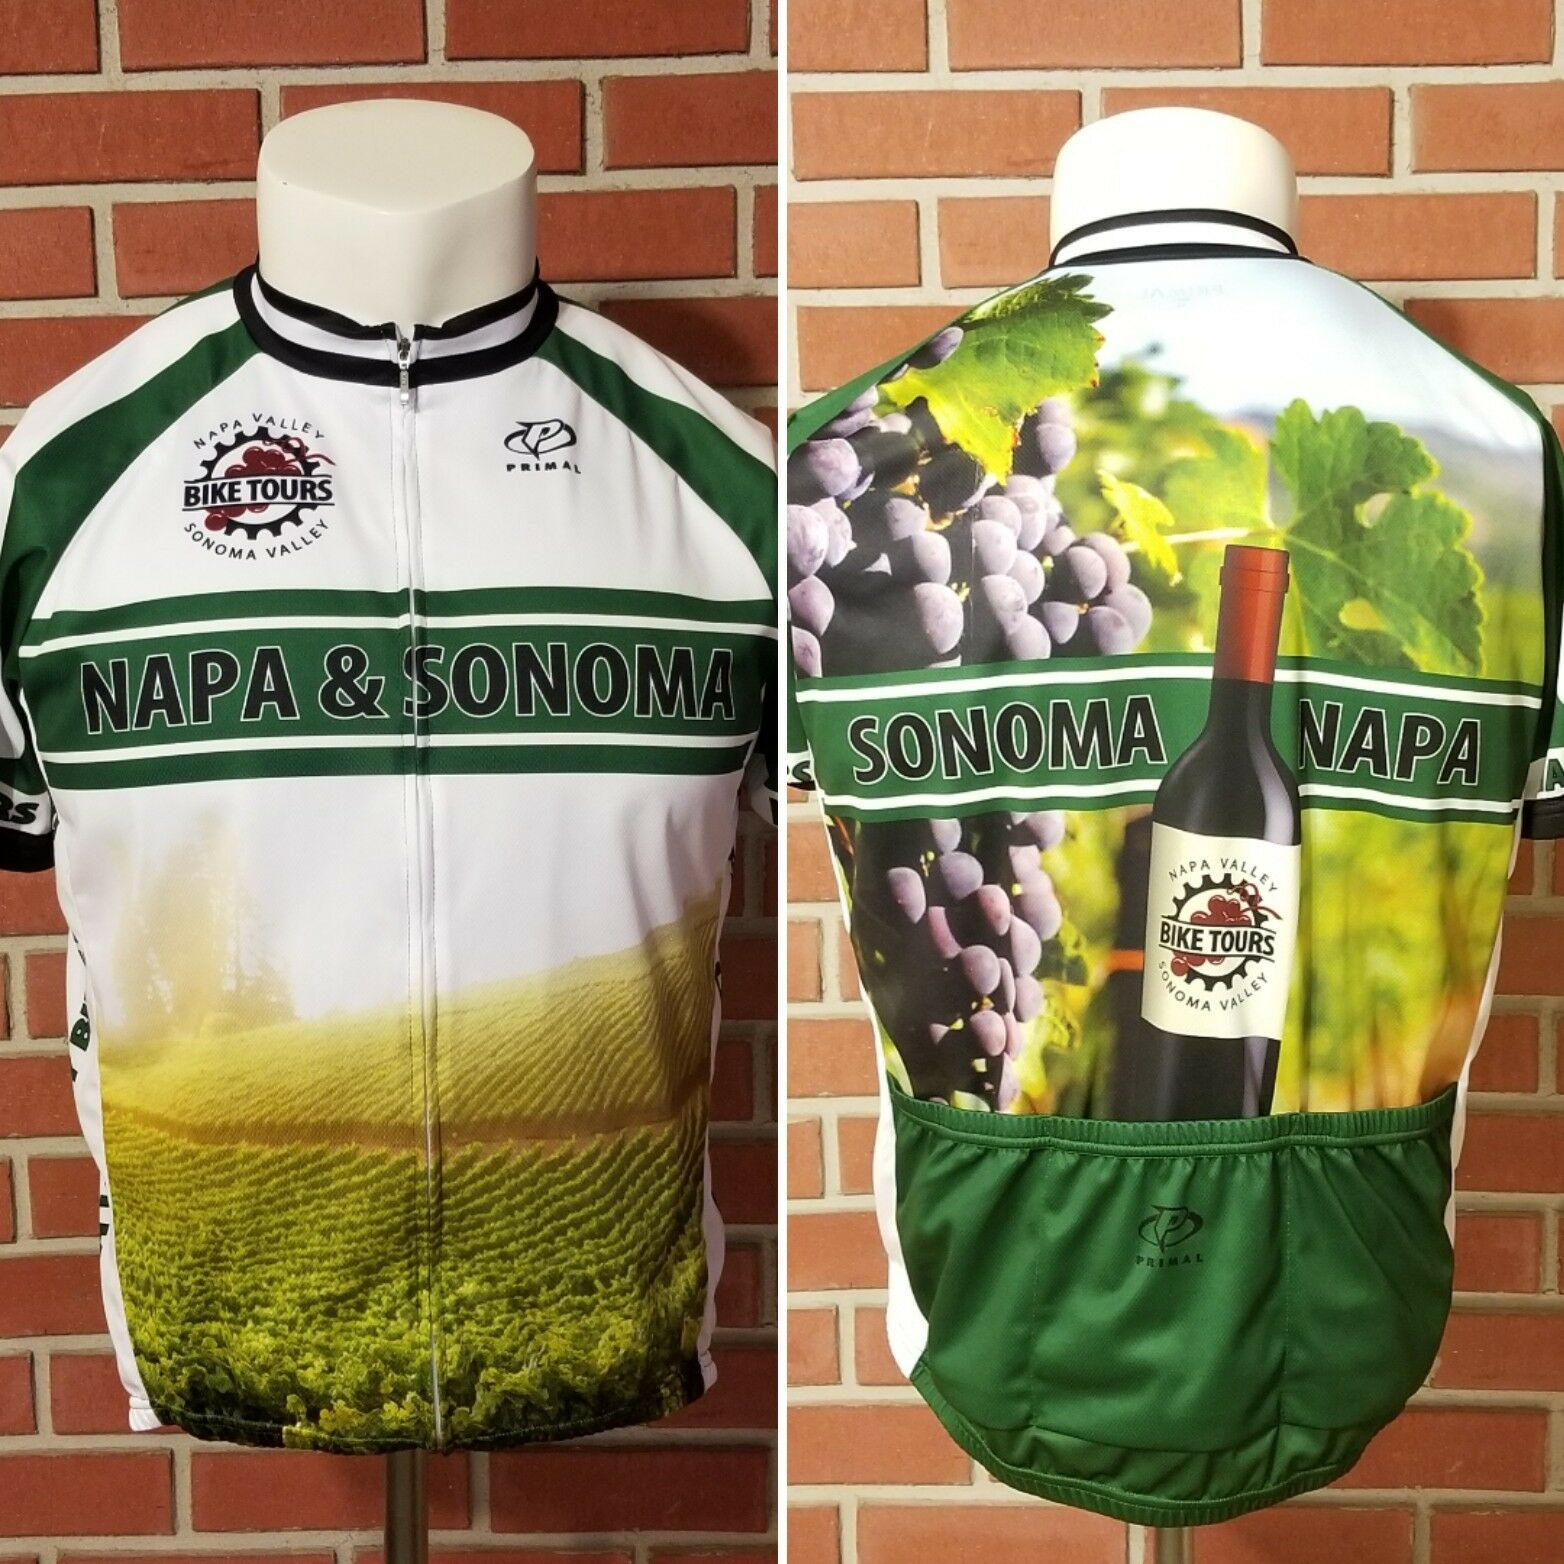 Primal Full Zip Short Sleeve Bicycle Cycling  Jersey Napa & Sonoma Tour Mens XL  save 50%-75%off